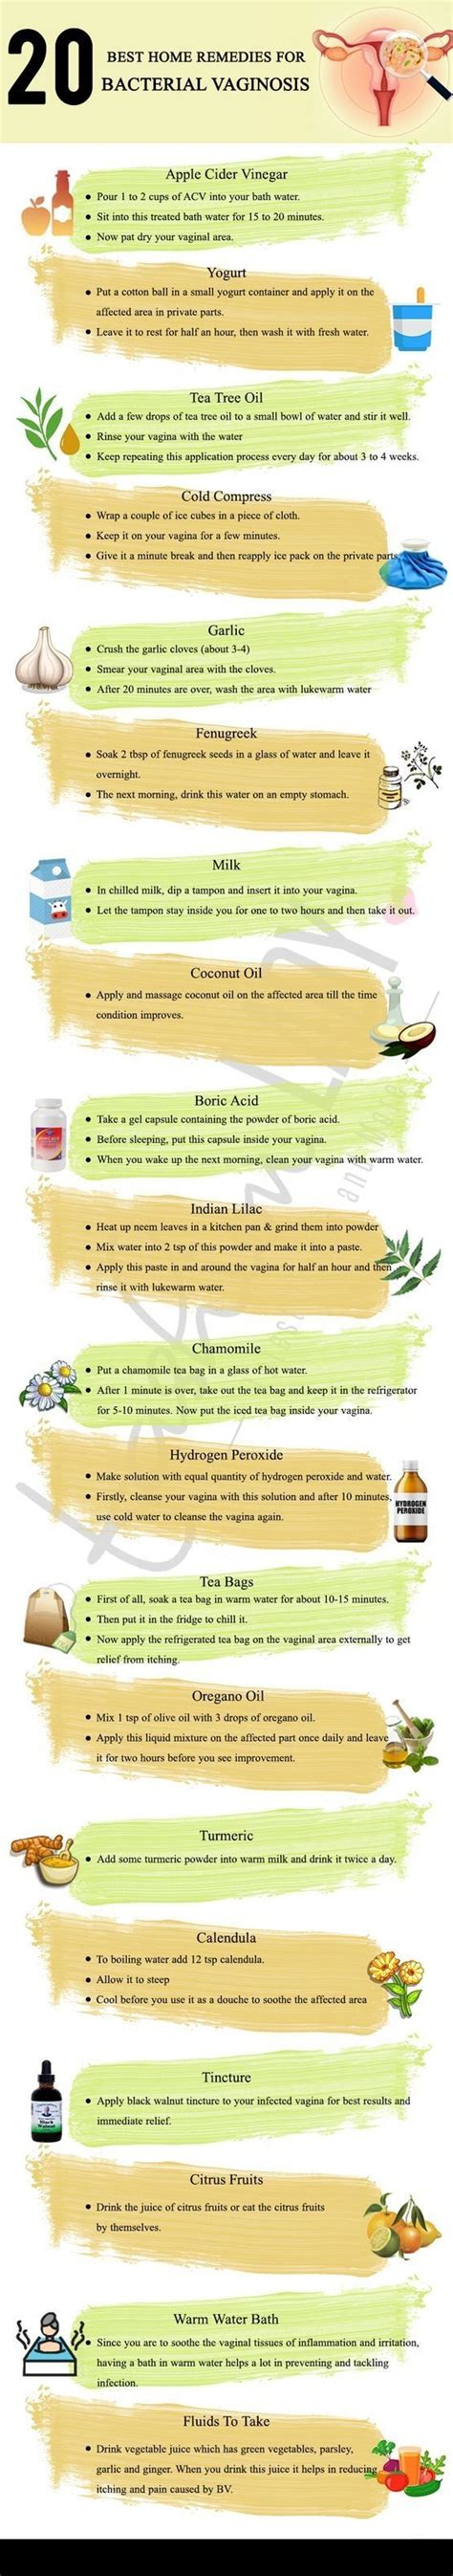 [click]20 Best Home Remedies For Bacterial Vaginosis.